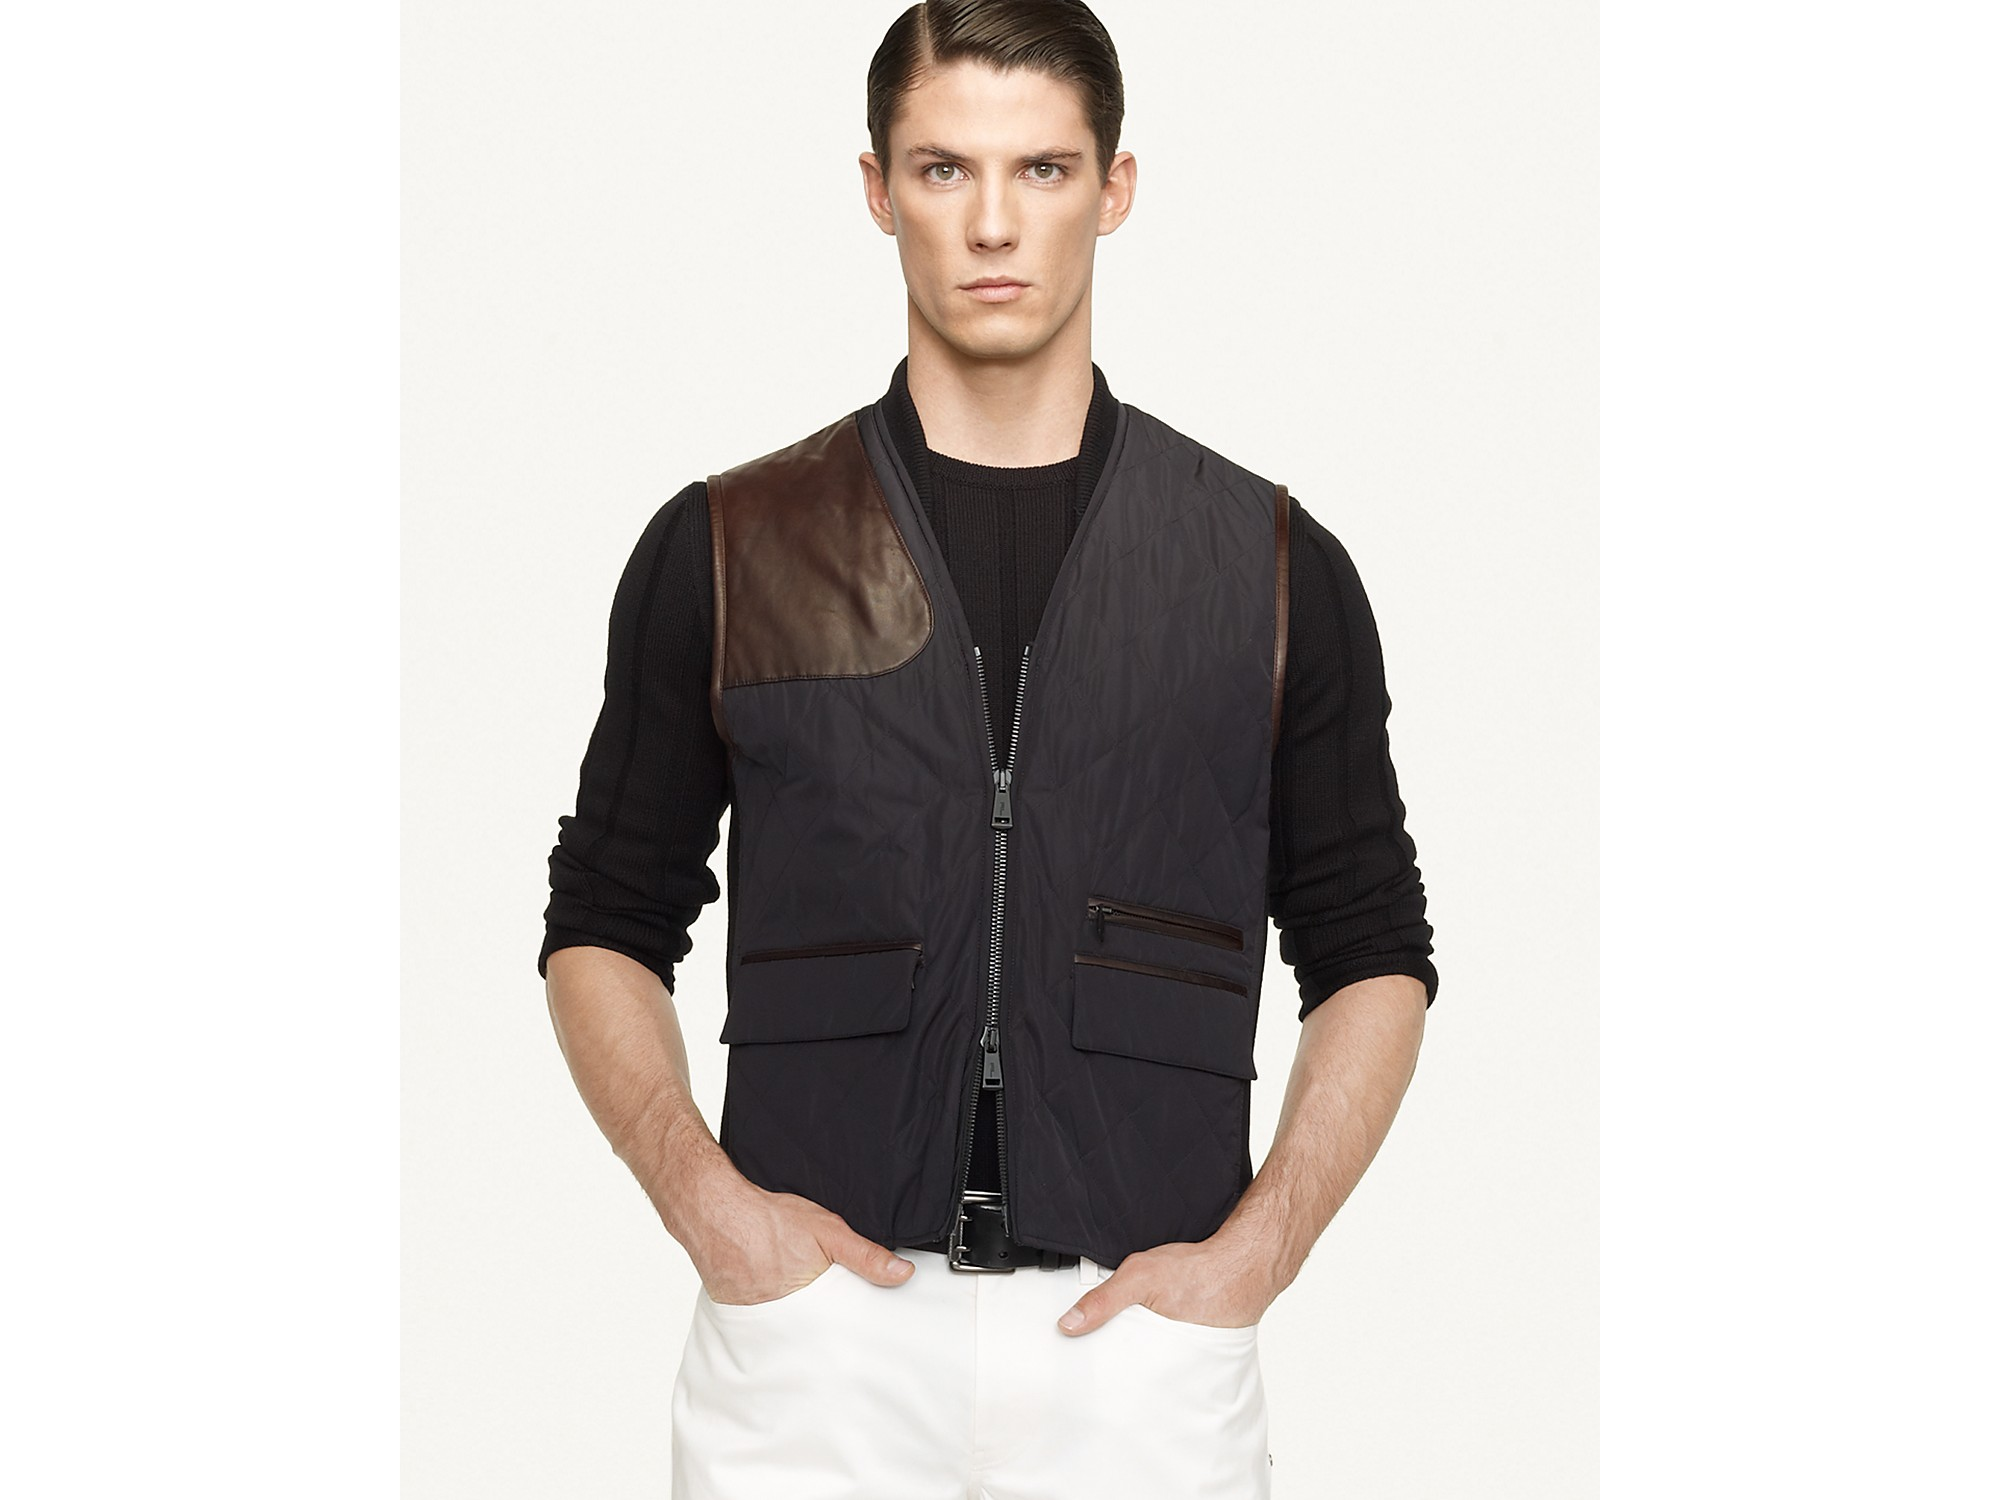 Lyst Ralph Lauren Black Label Quilted Microfiber Riding Vest In Black For Men